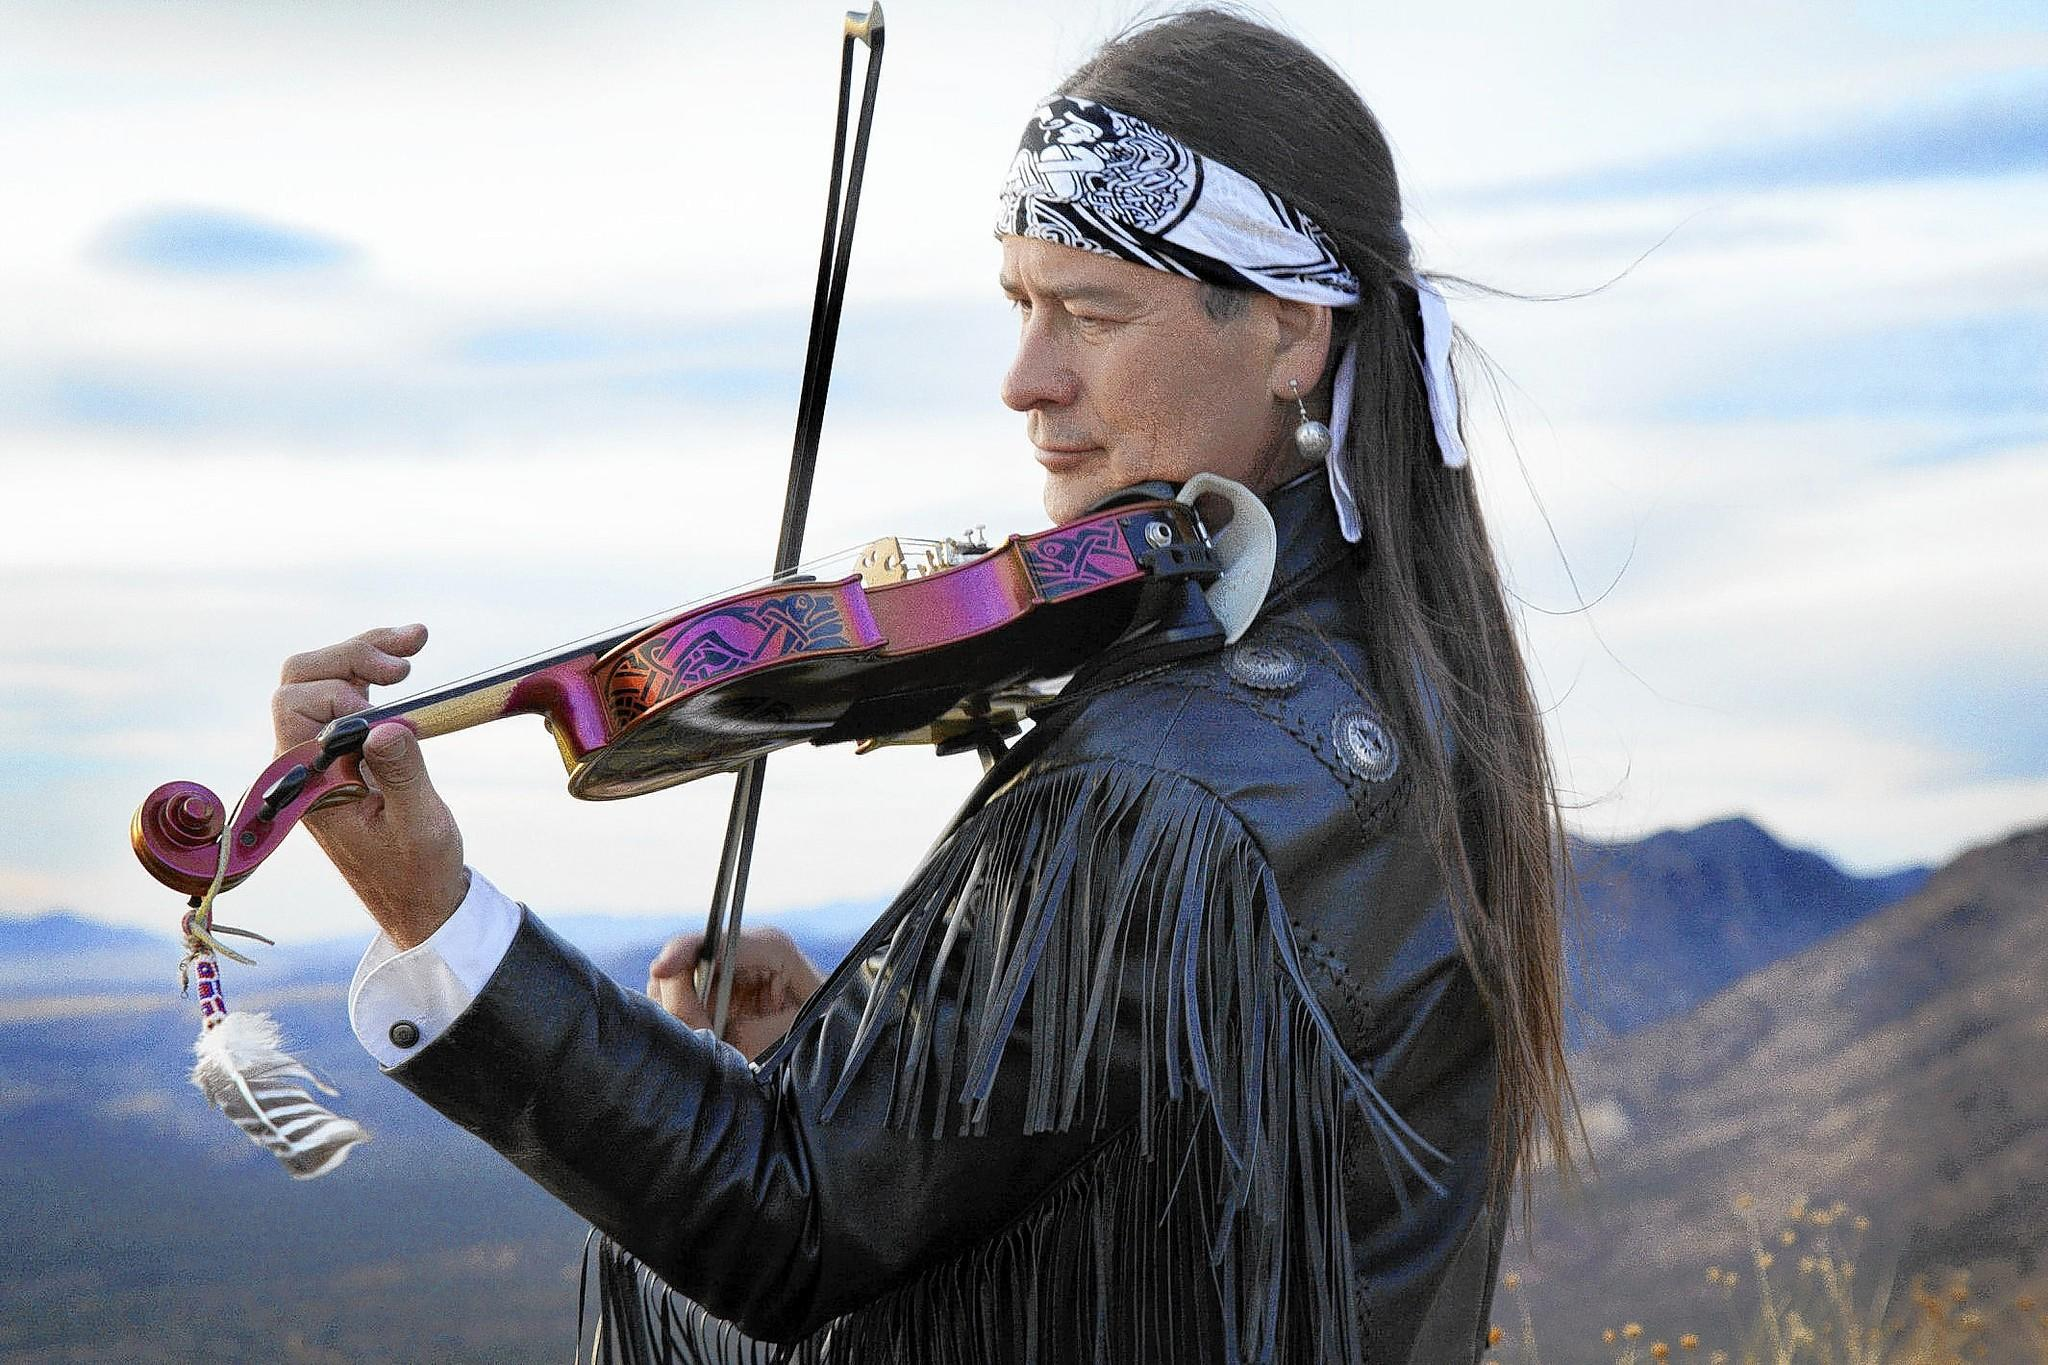 Native American (Paiute) violinist and flutist Arvel Bird performs at the 34th Annual Roasting Ears of Corn Festival in Allentown on Aug. 16 and 17.